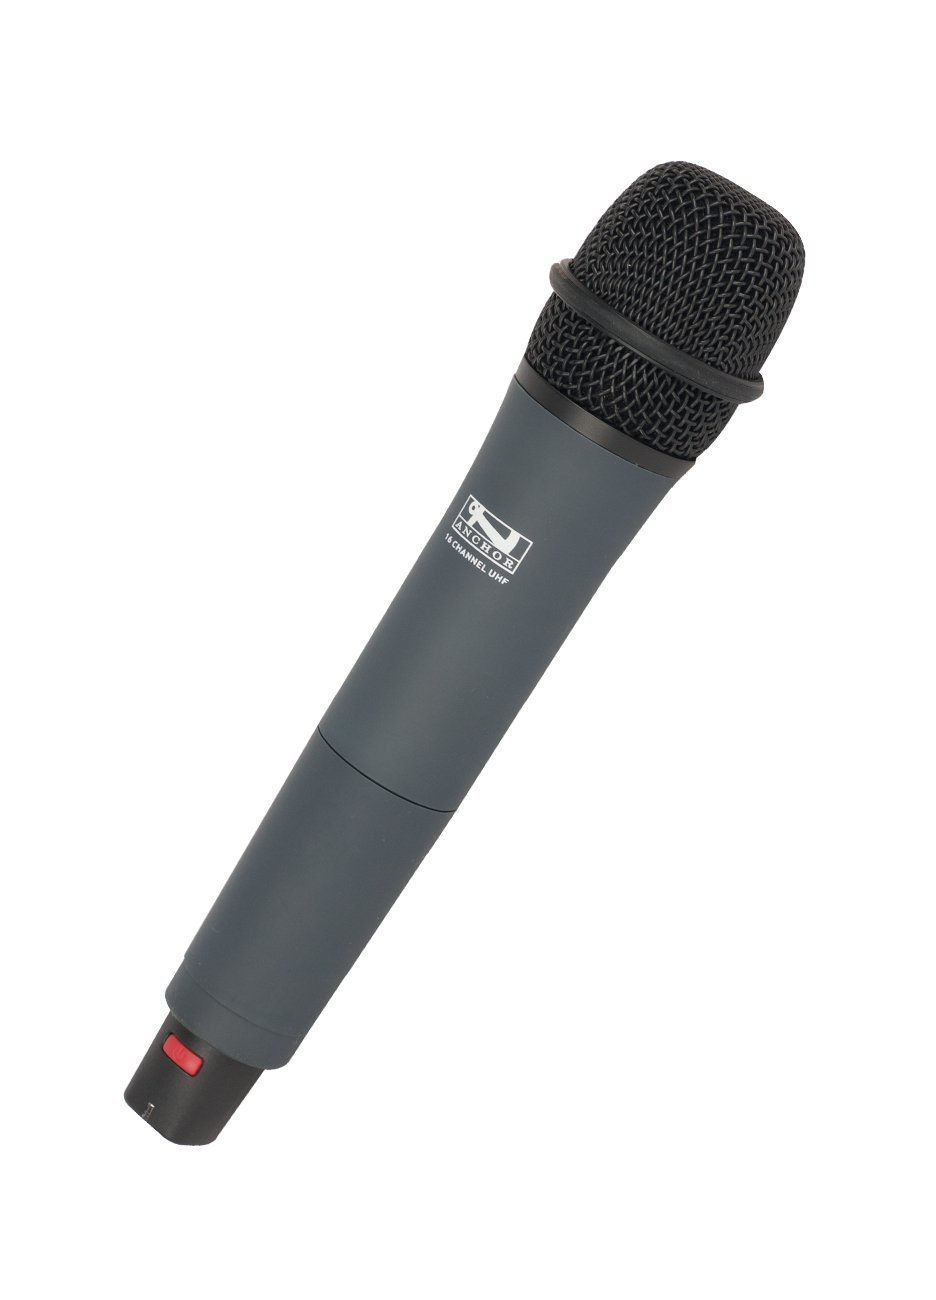 Wireless Handheld Microphone, 682-698 MHz Frequency Range